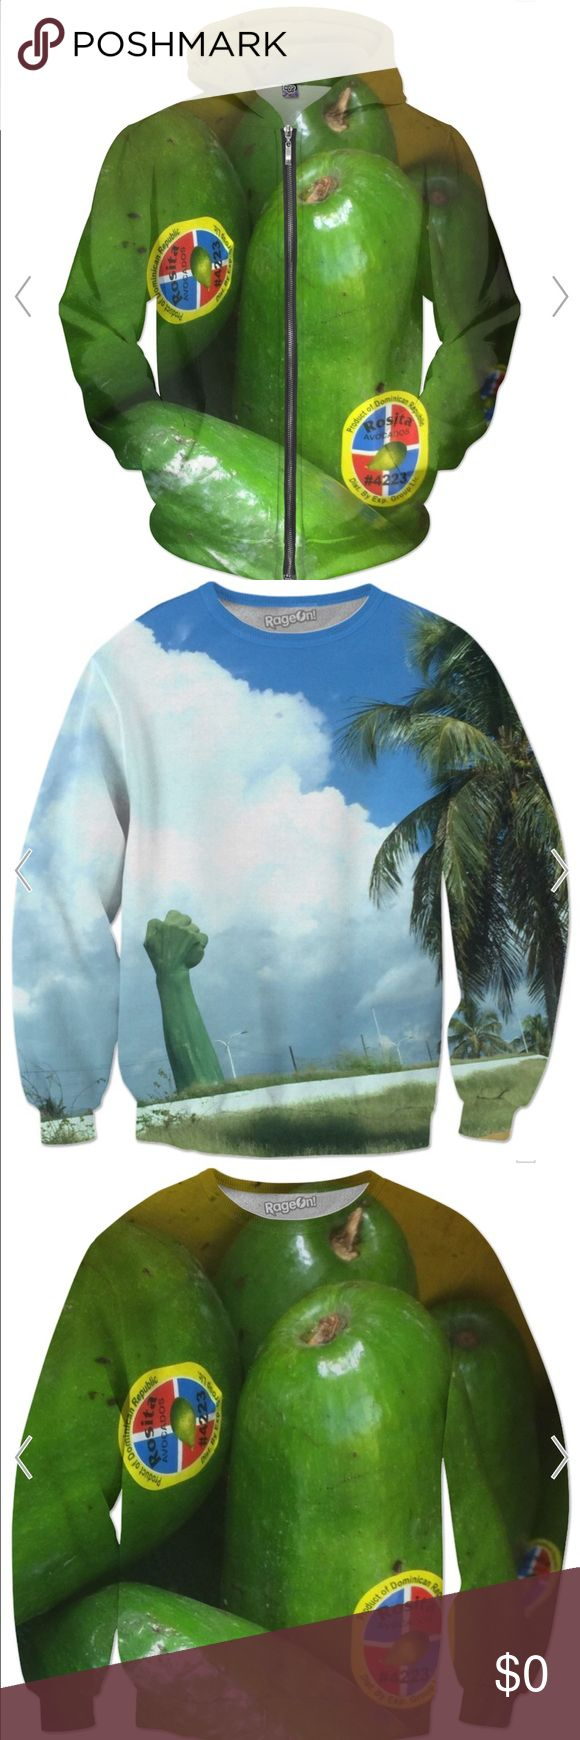 Sweatshirts Hoodies Dominican Independence Day RageOn! Custom one of kind designs! Unisex clothing home decor and accessories! RageOn! Other